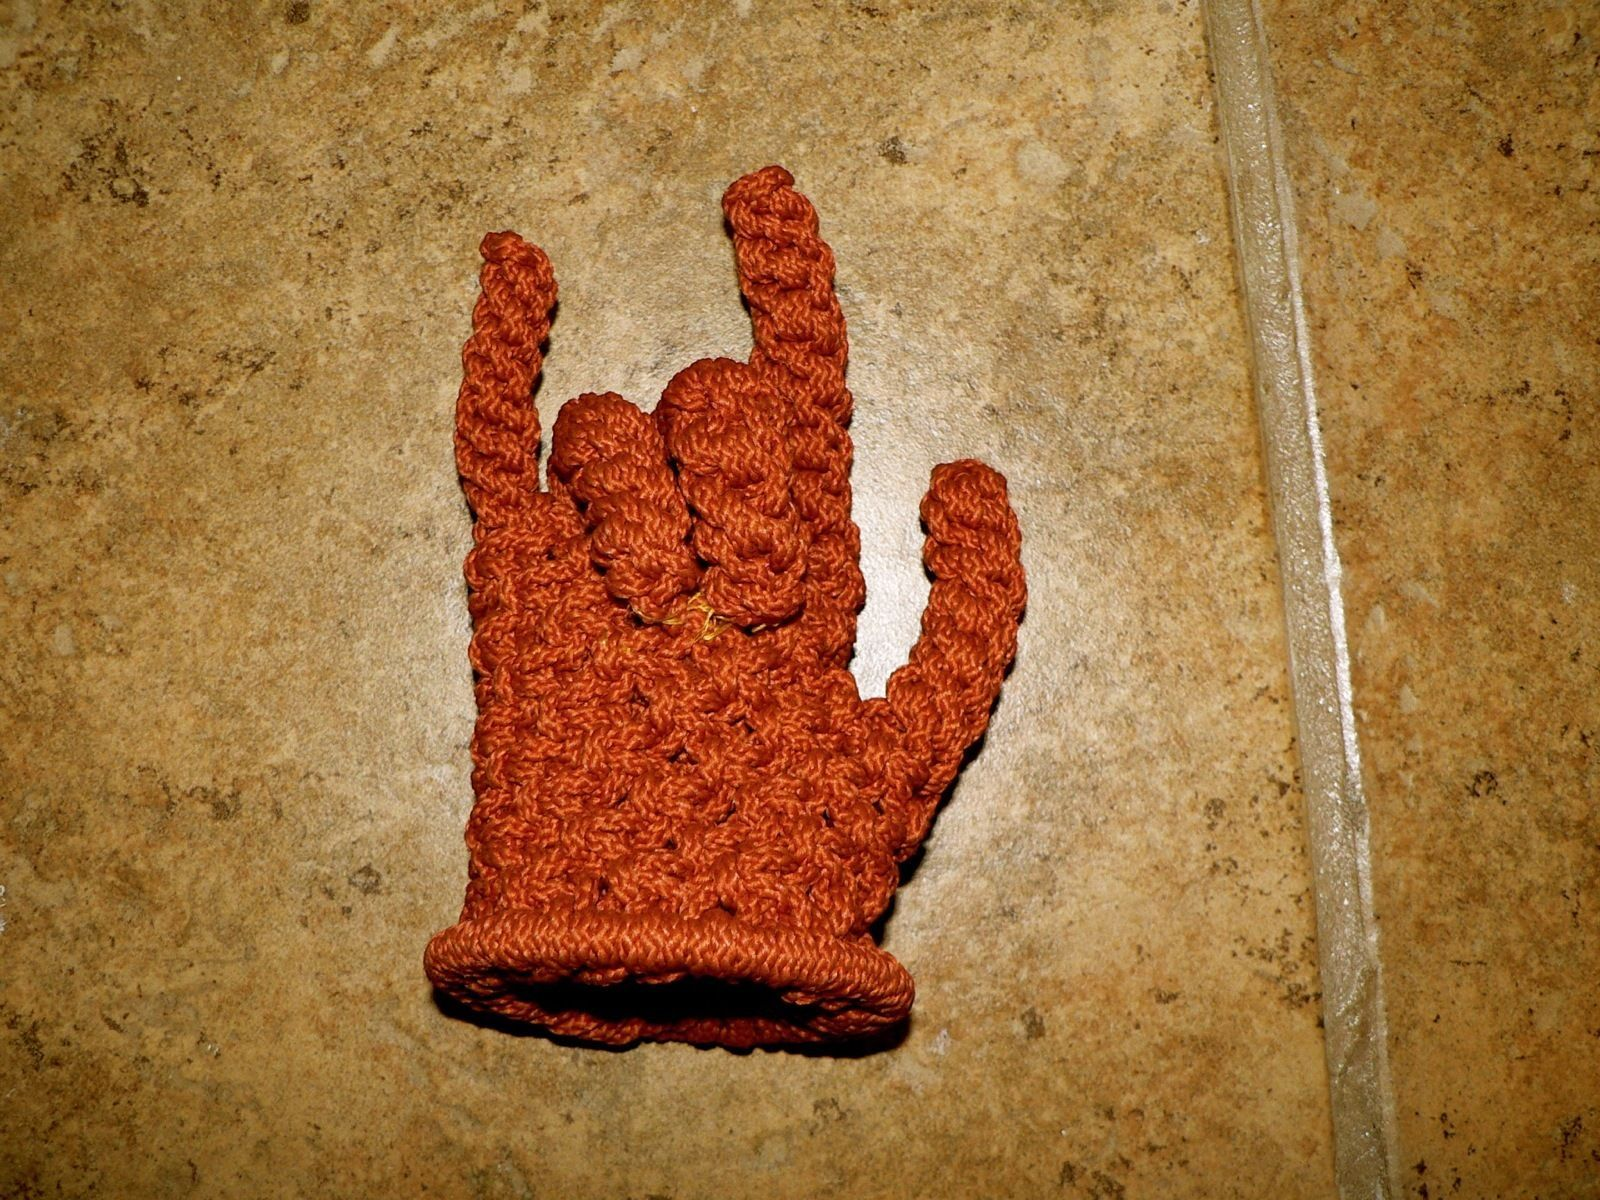 Handcrafted Devil Horns Crocheted Rope Hand Rock & Roll Heavy Metal